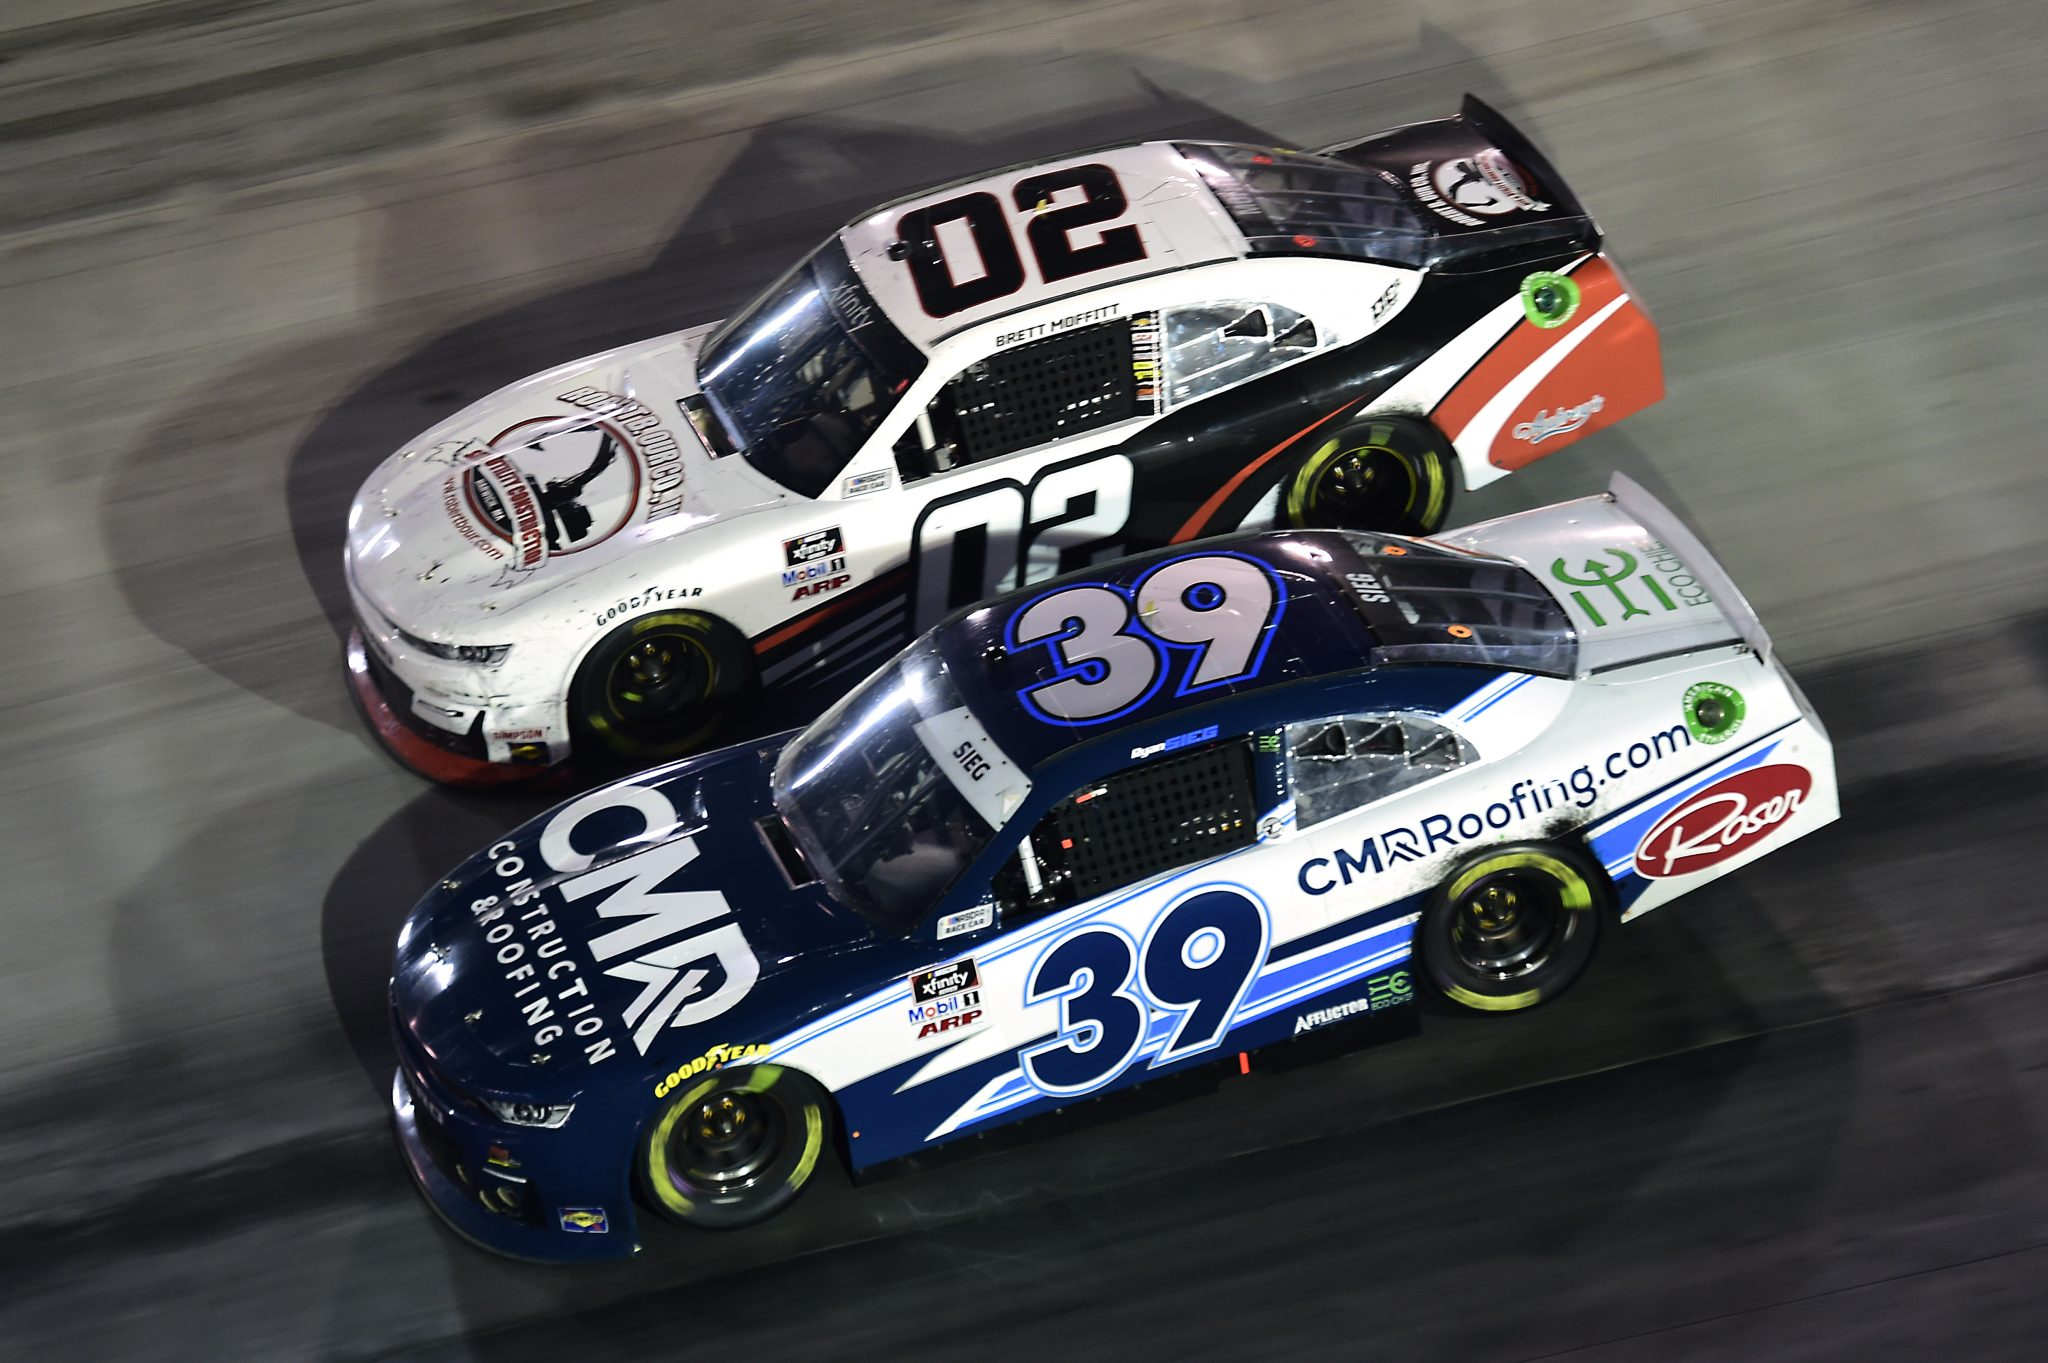 BRISTOL, TENNESSEE - SEPTEMBER 18: Ryan Sieg, driver of the #39 CMRRoofing.com Chevrolet, and Brett Moffitt, driver of the #02 Robert B Our Inc Co Chevrolet, race during the NASCAR Xfinity Series Food City 300 at Bristol Motor Speedway on September 18, 2020 in Bristol, Tennessee. (Photo by Jared C. Tilton/Getty Images) | Getty Images